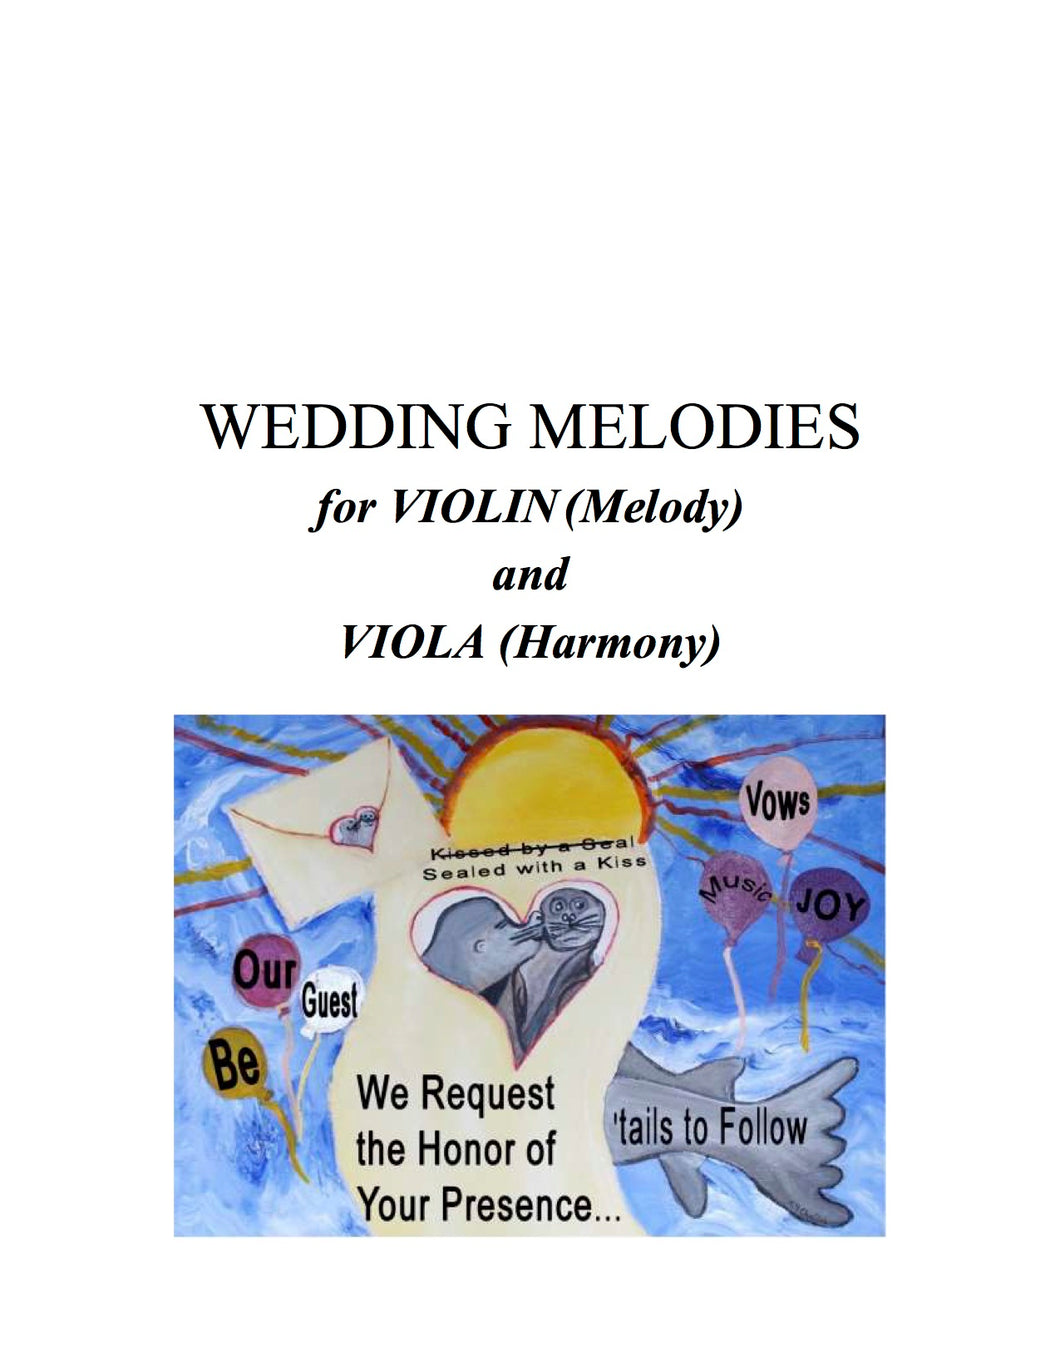 057 - Wedding Melodies for Violin (Melody) and Viola (Harmony)